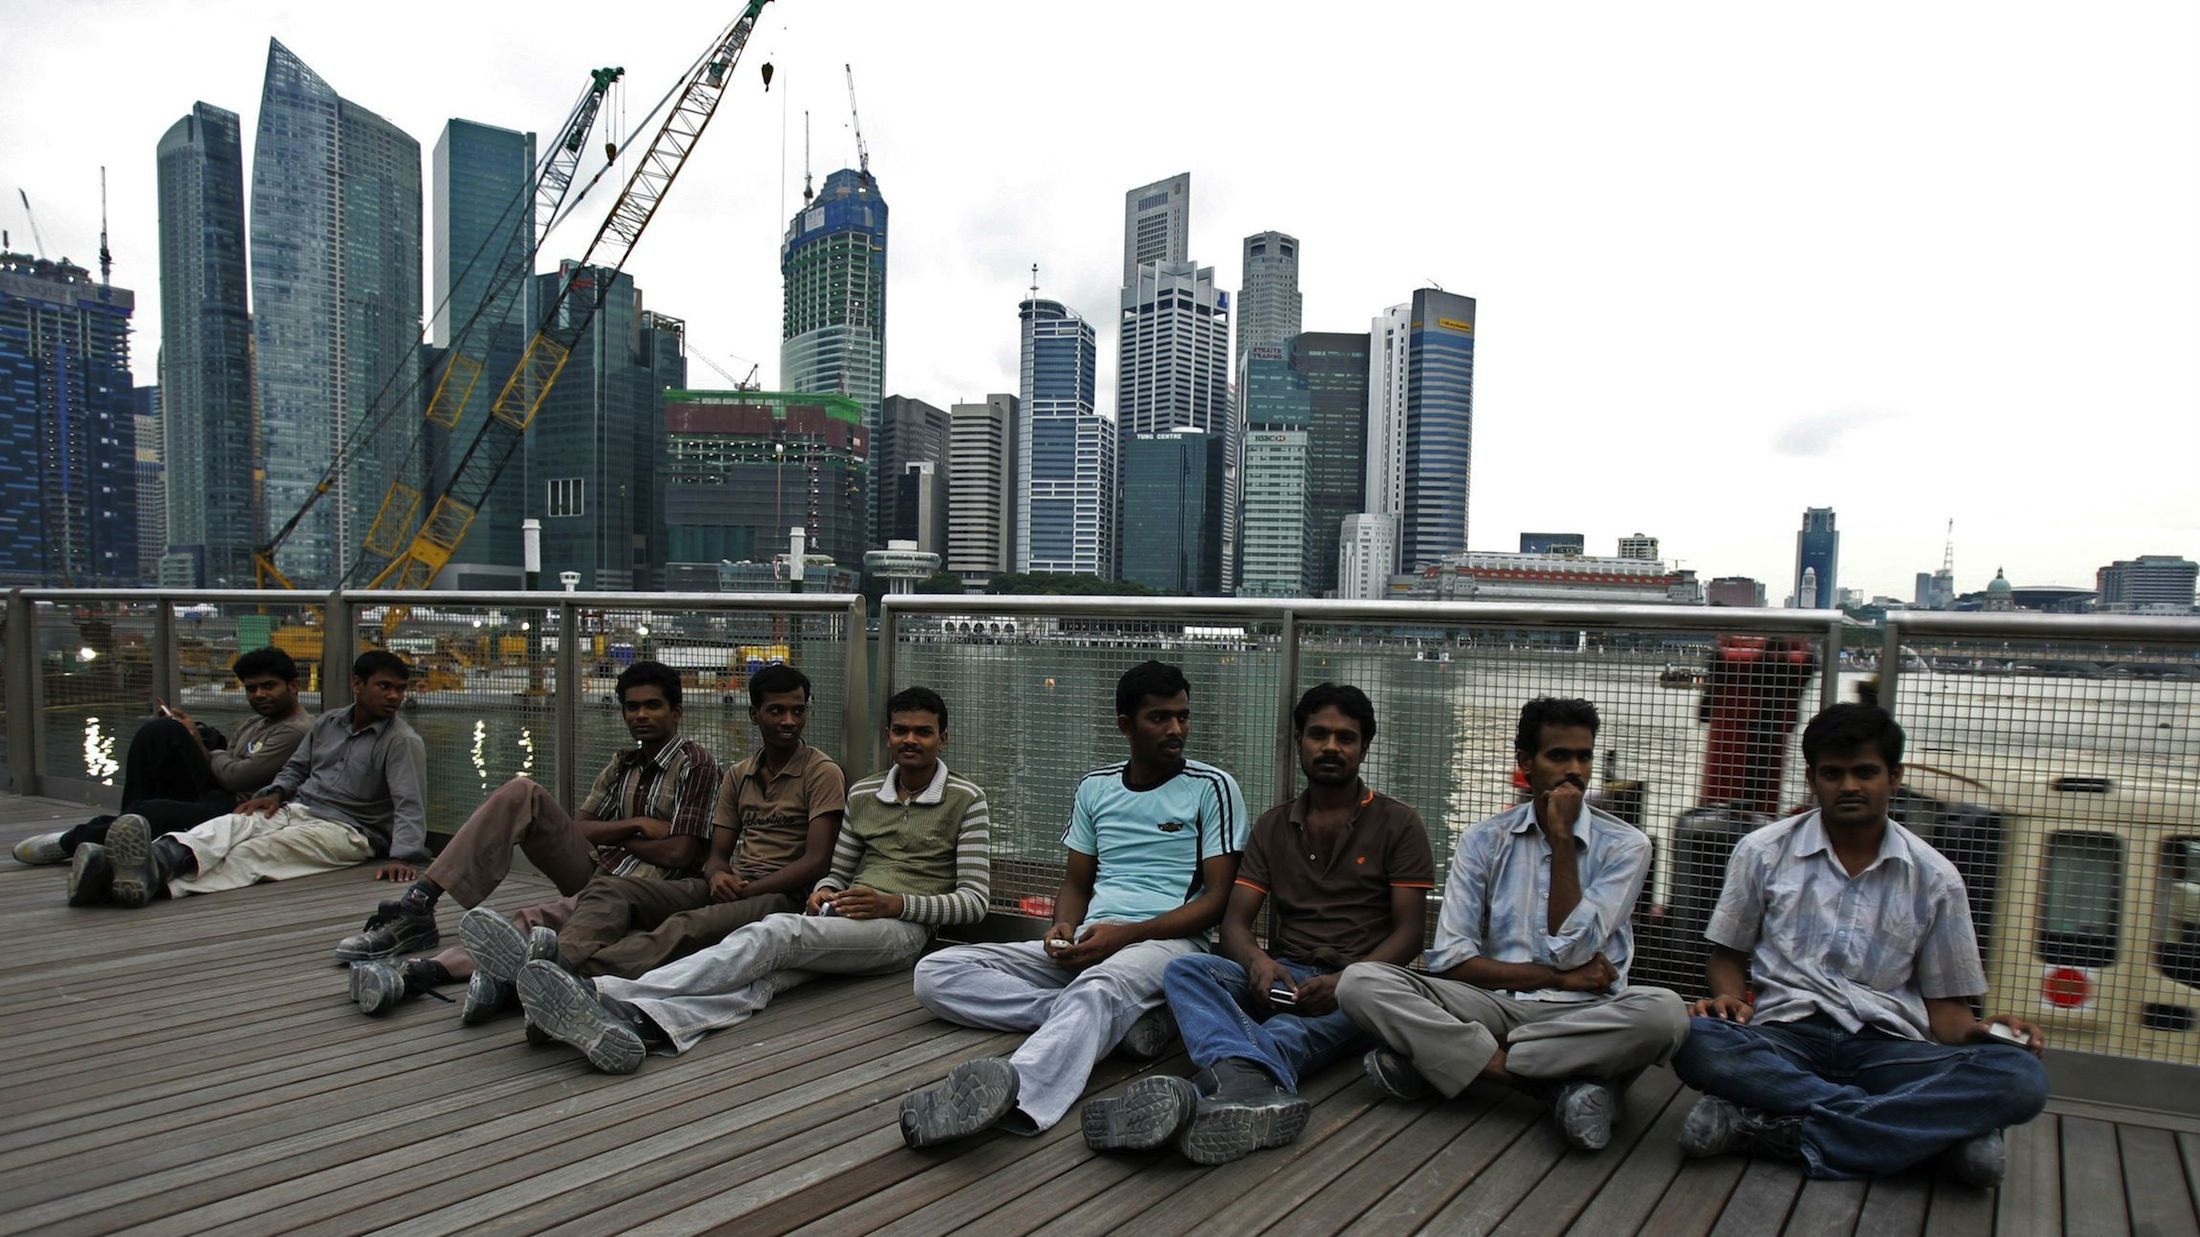 Migrant workers from the Indian sub-continent on their day off sit on an outdoor viewing platform at the recently opened Marina Bay Sands integrated resorts in Singapore August